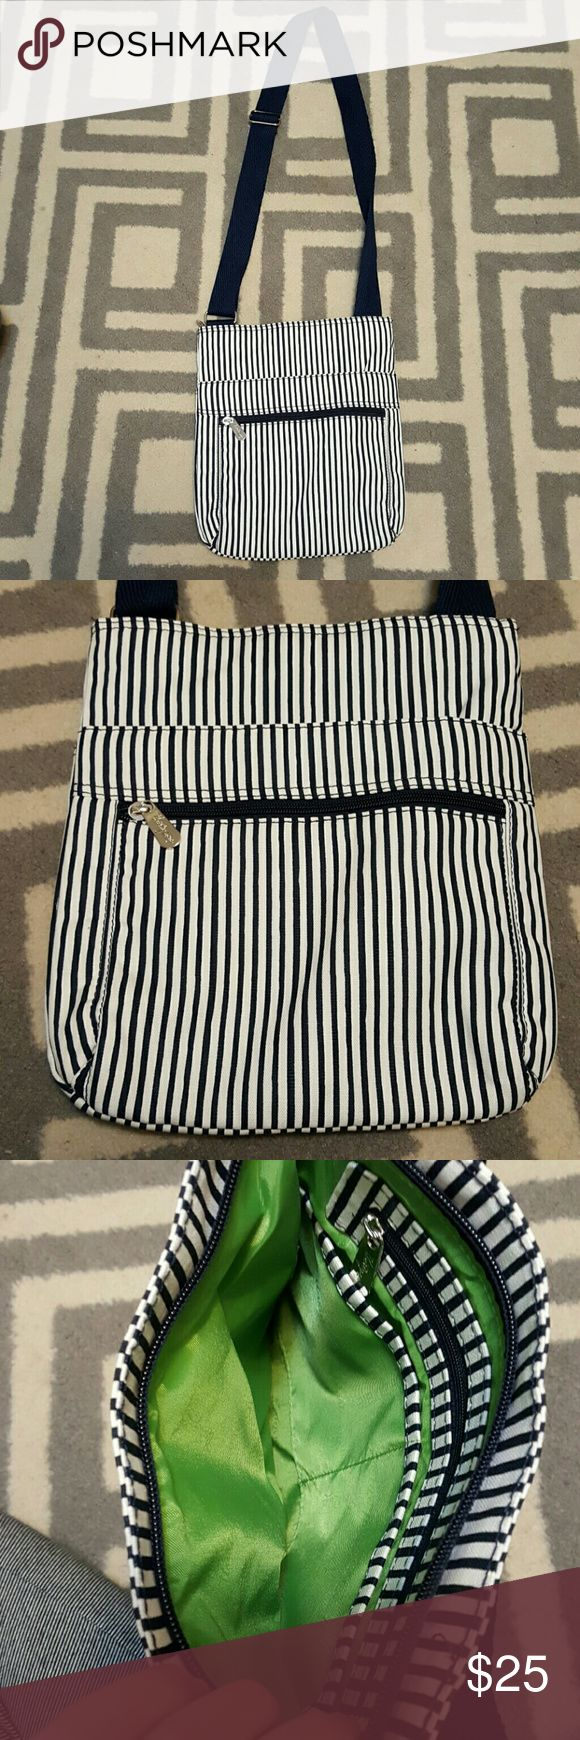 Thirty One crossbody bag Thirty One crossbody, navy blue and white stripes, brand new never used, excellent condition, comes from a smoke free home. Thirty One Bags Crossbody Bags